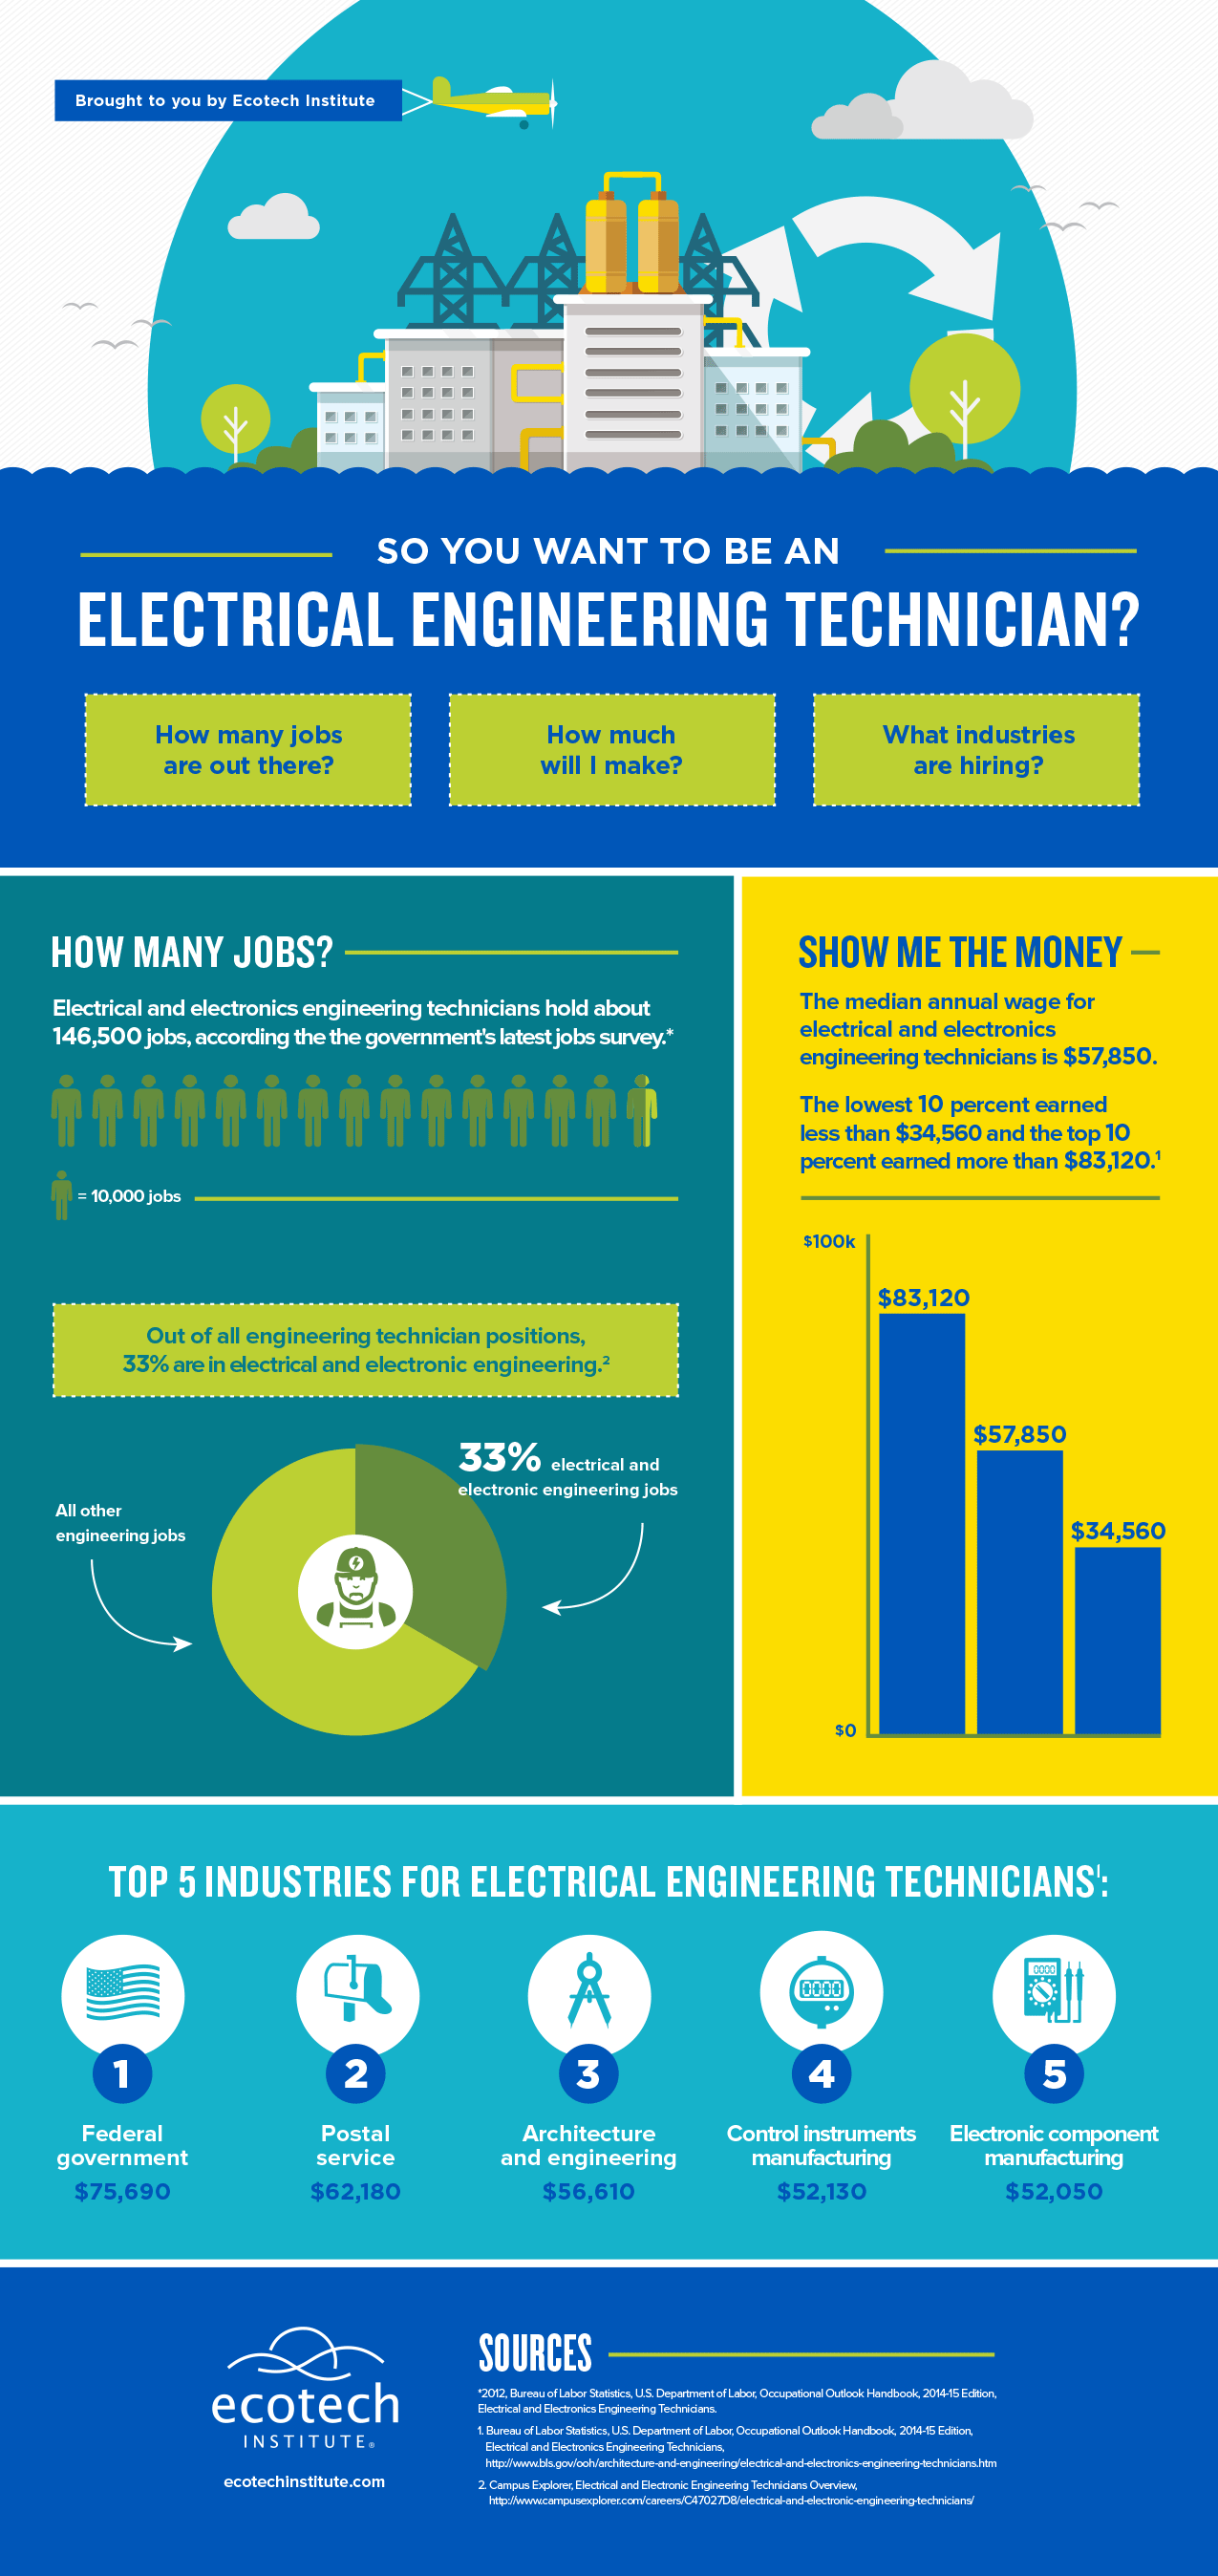 [INFOGRAPHIC] So you want to be an electrical engineering